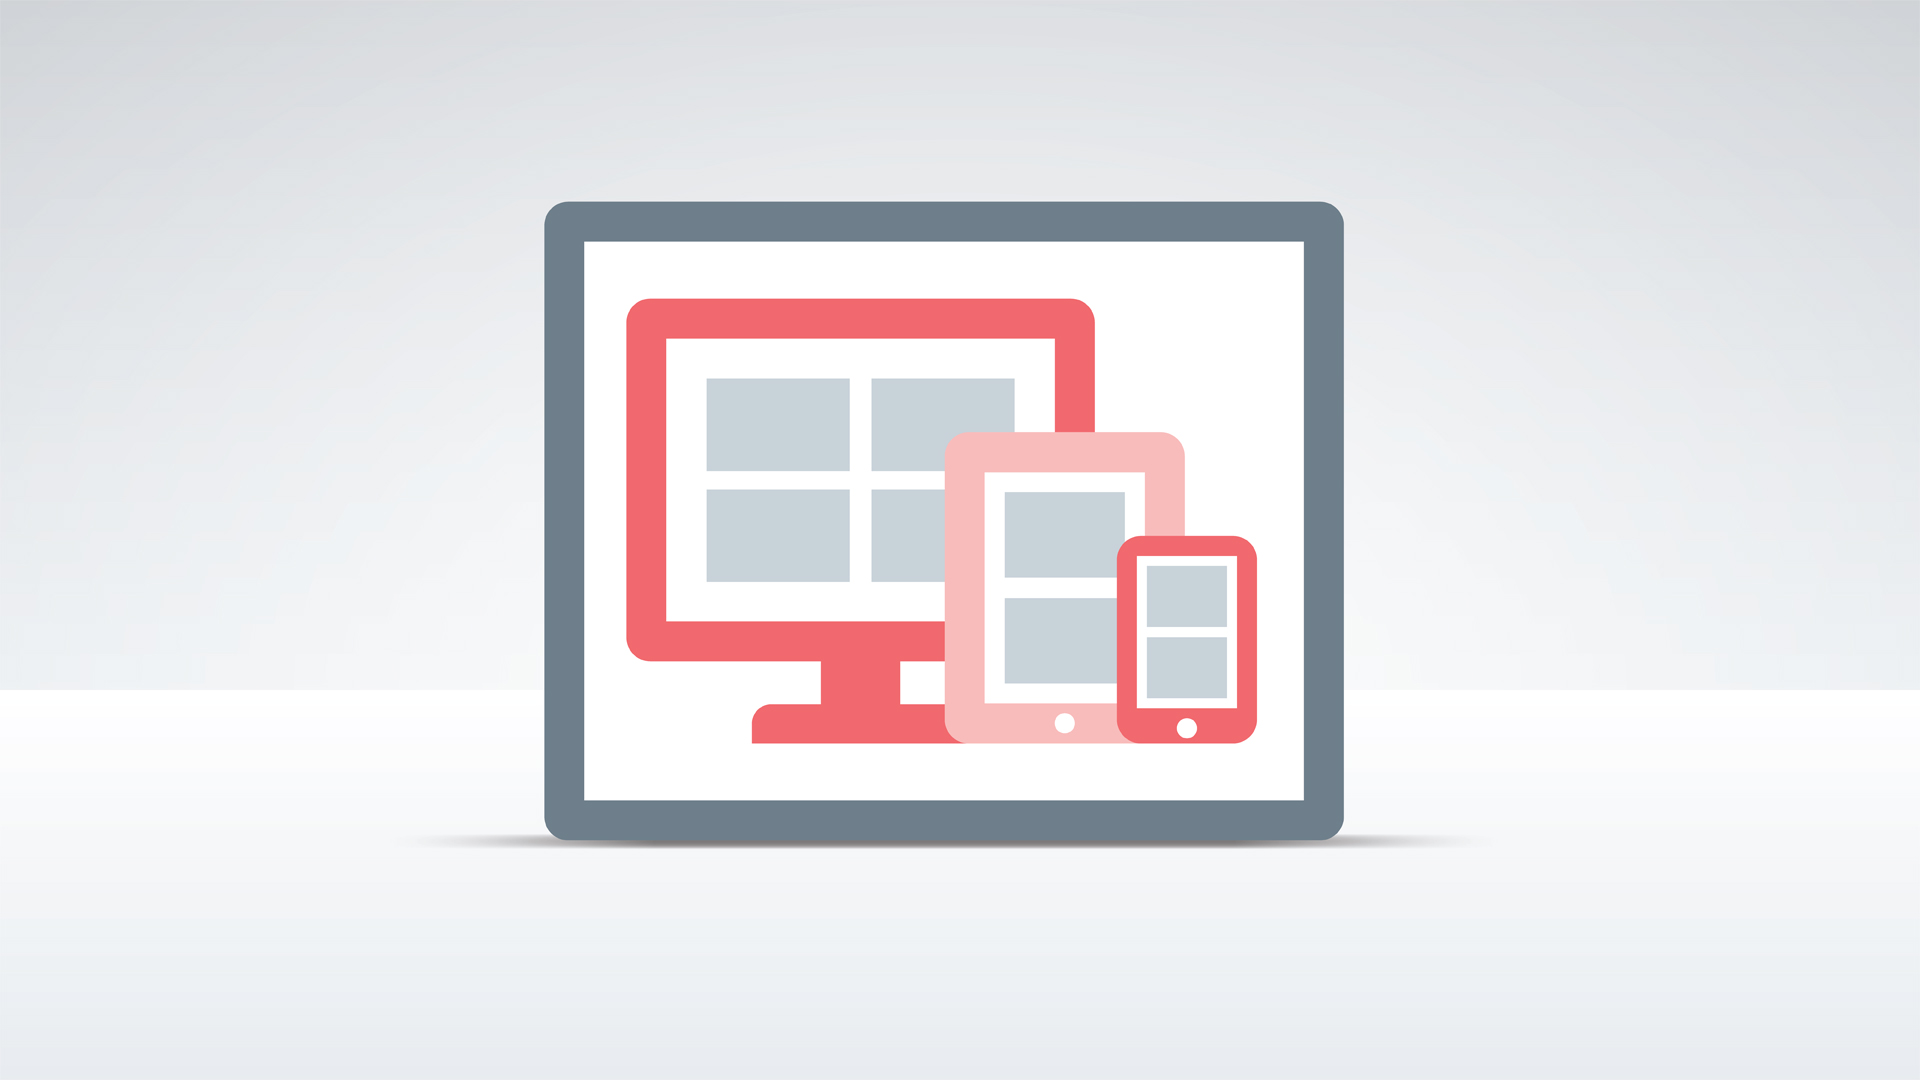 Adding graphics to the main section: Creating a Responsive Web Design